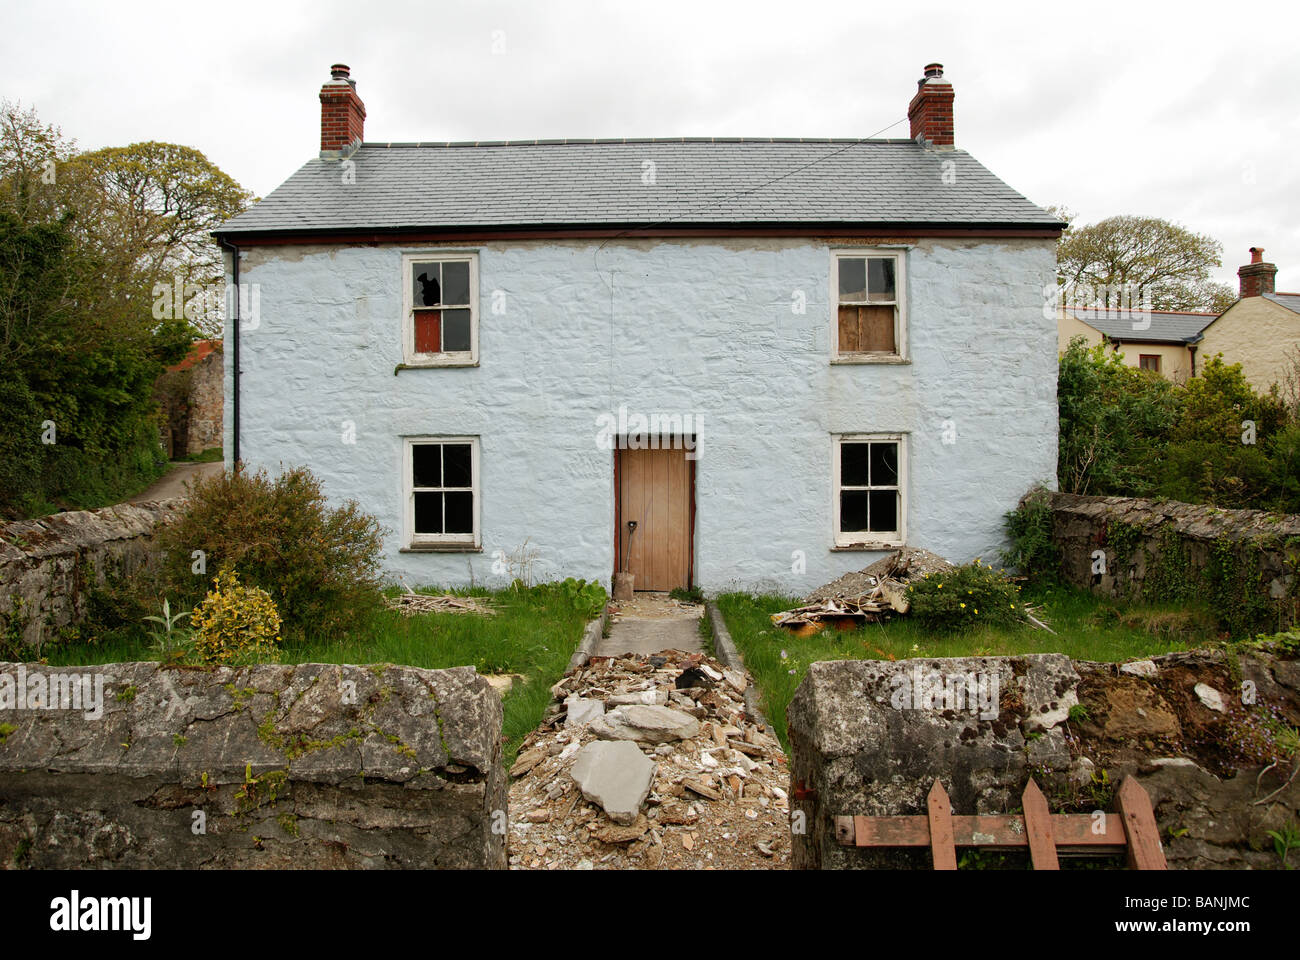 an old cottage in cornwall being refurbished as a holiday property or second home - Stock Image